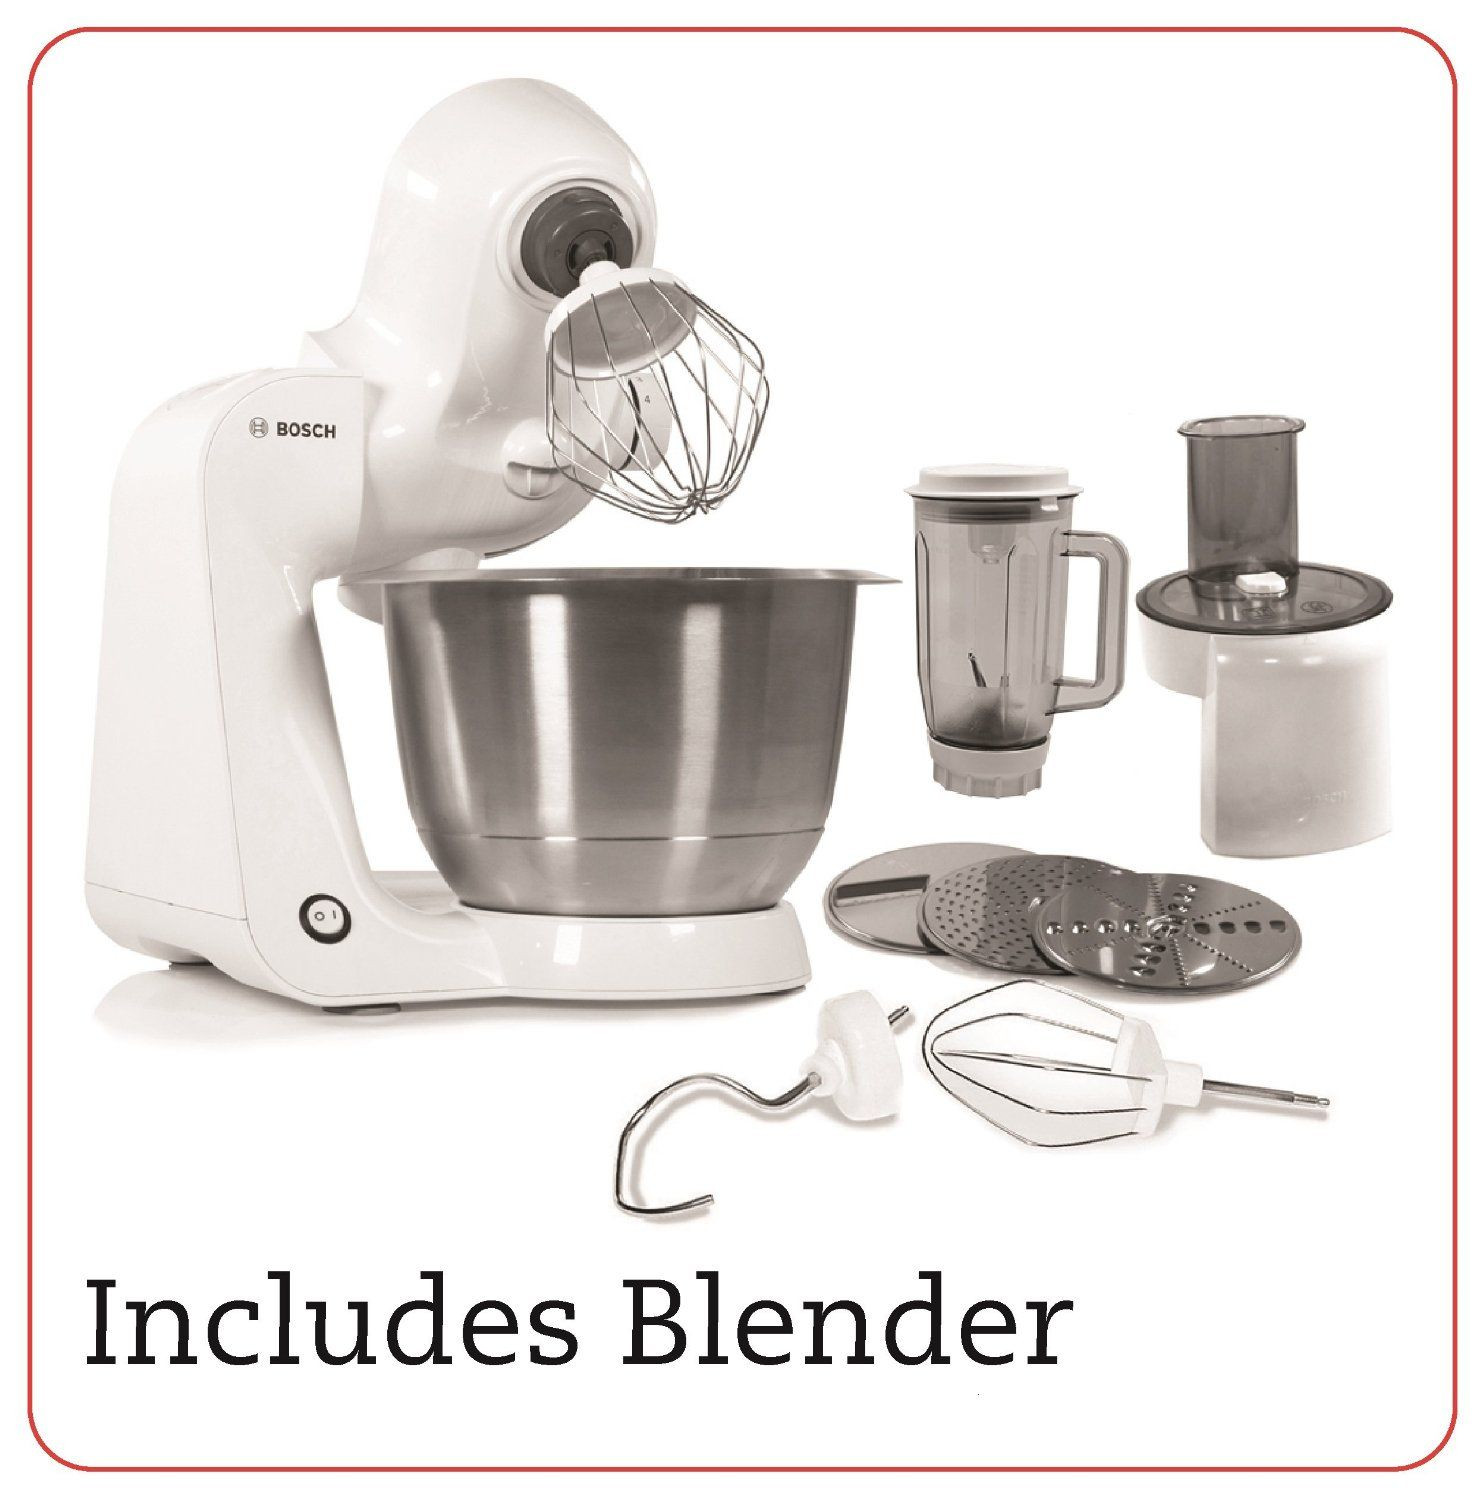 Bosch styline stand mixer with continuous shredder and